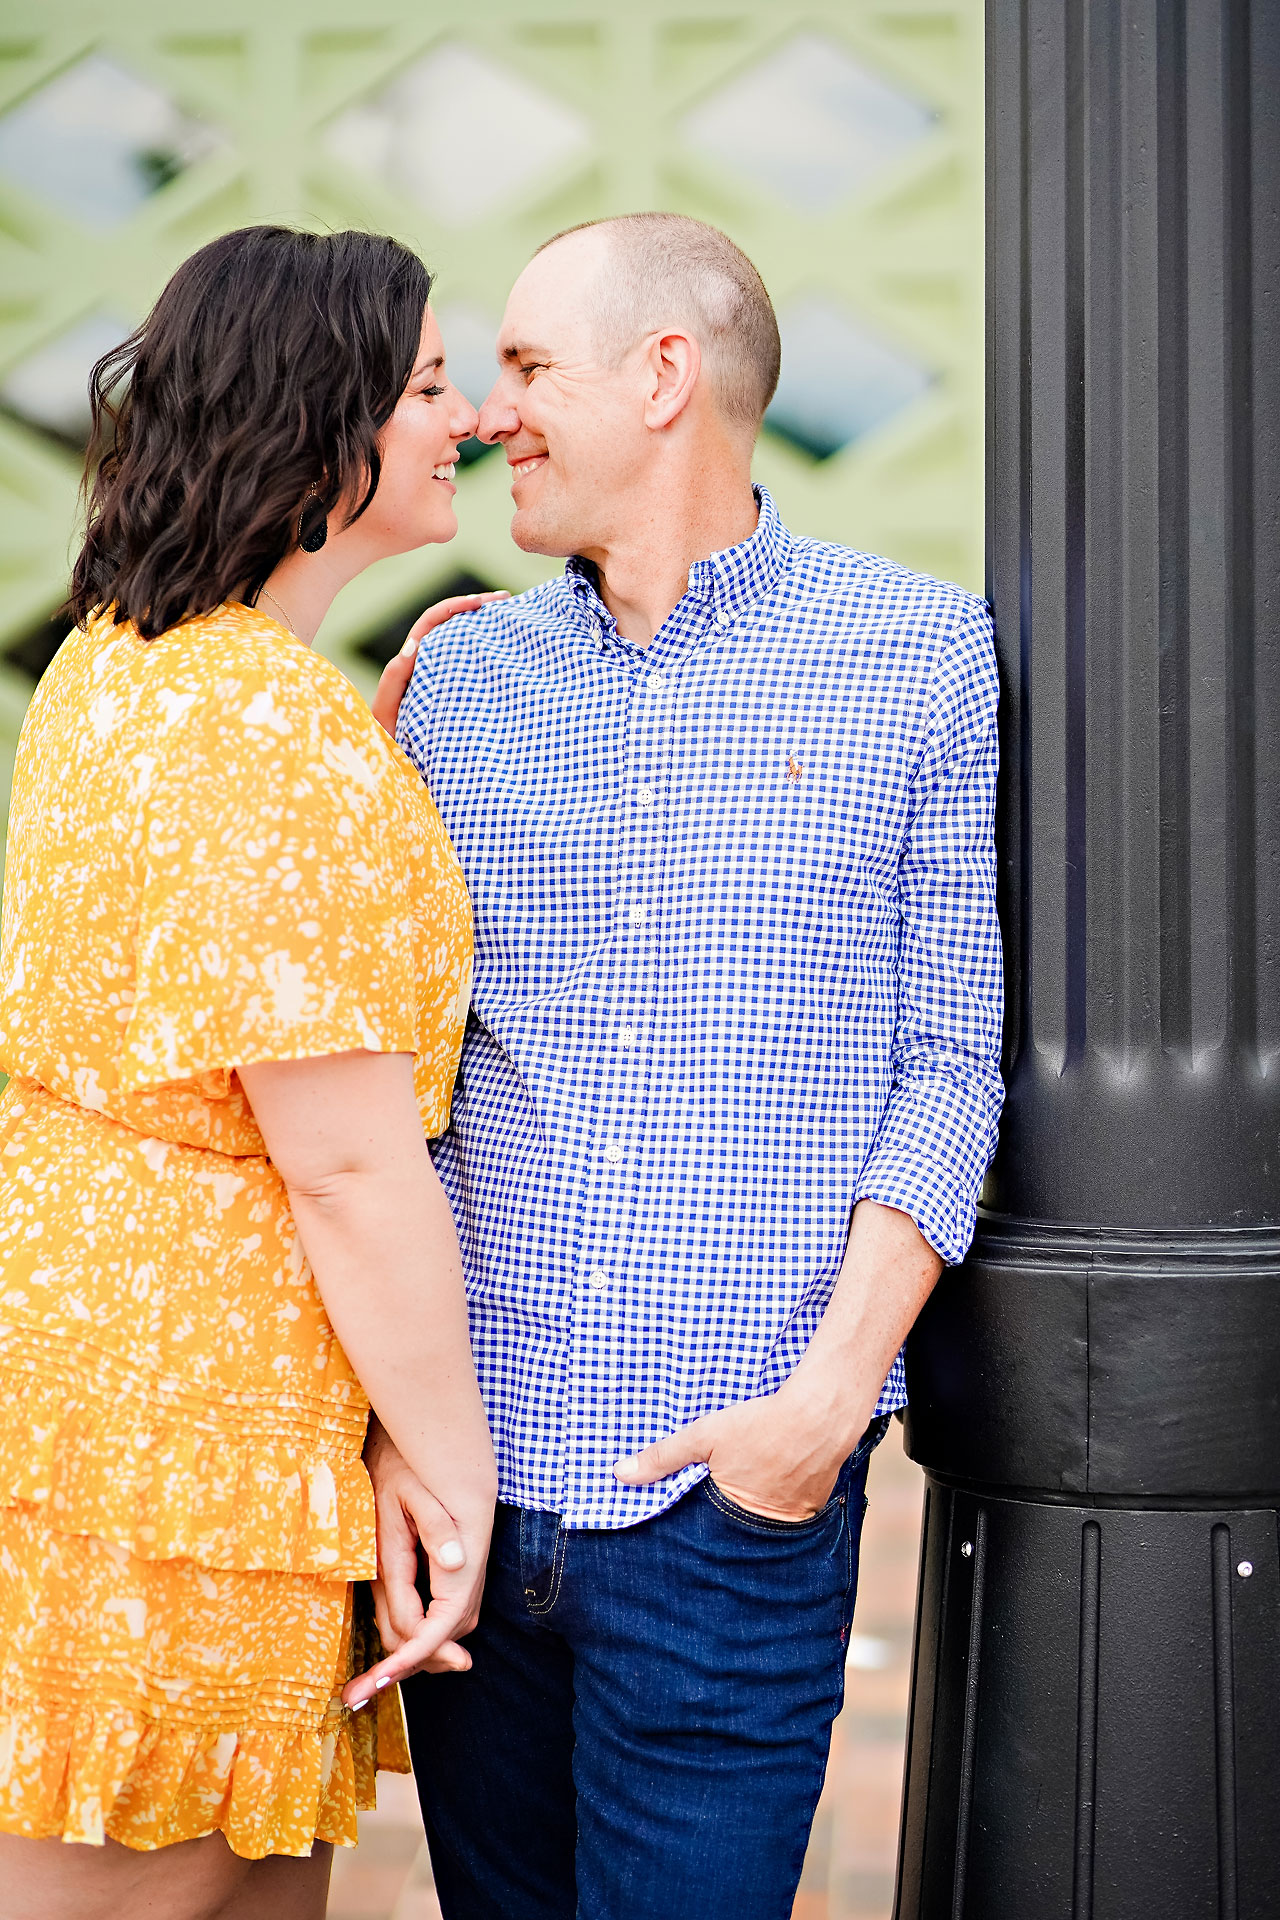 Katie Chuck Bottleworks Canal Indianapolis Engagement Session 041